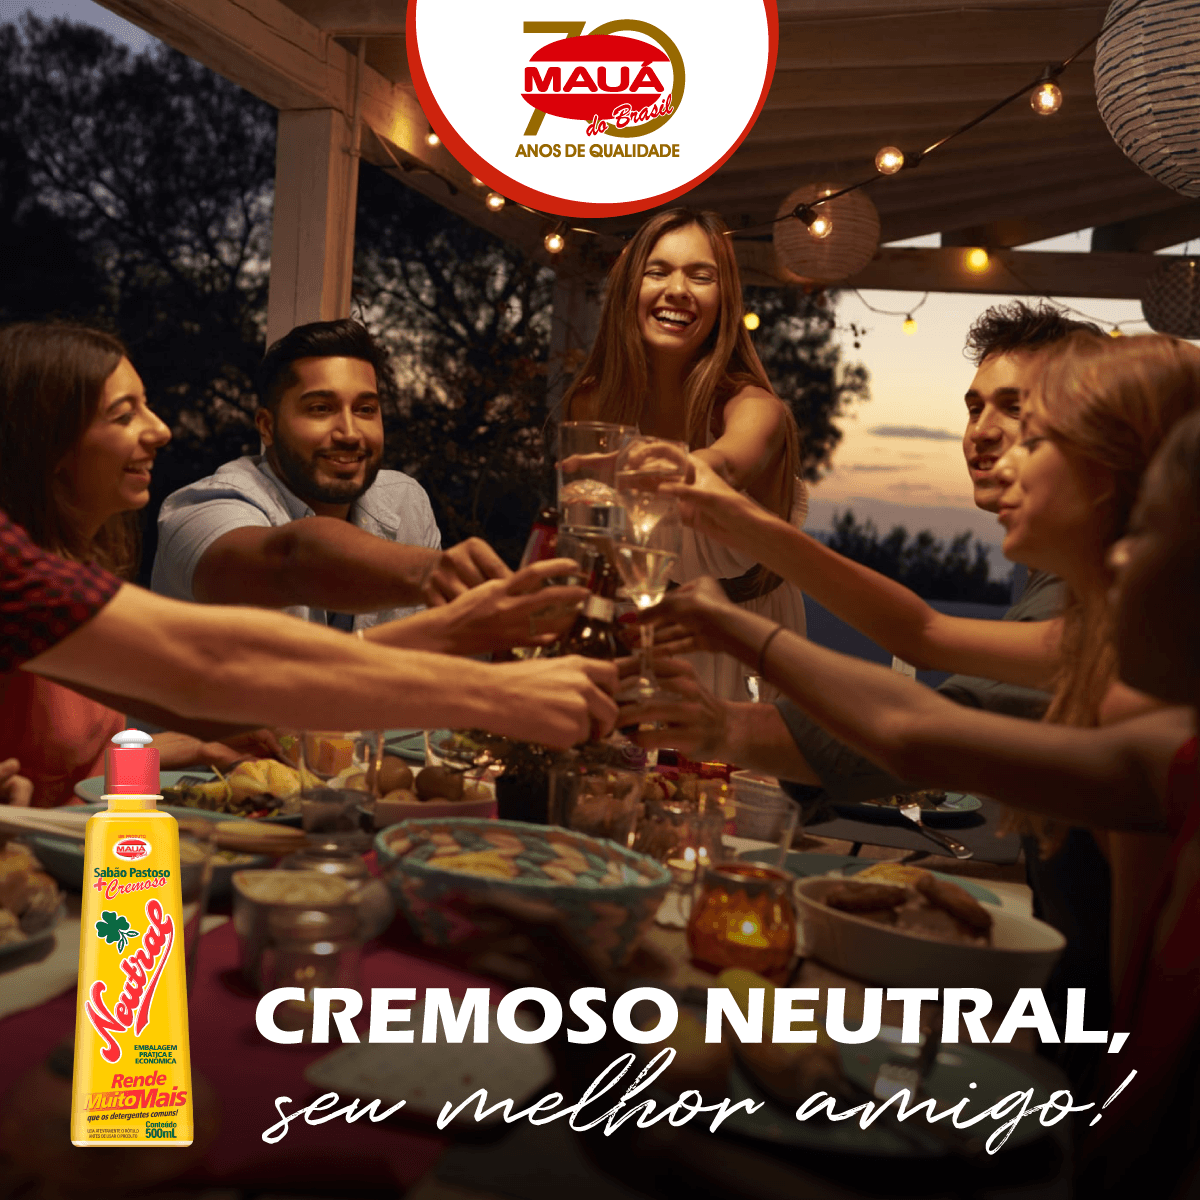 Dia do amigo com Cremoso Neutral!